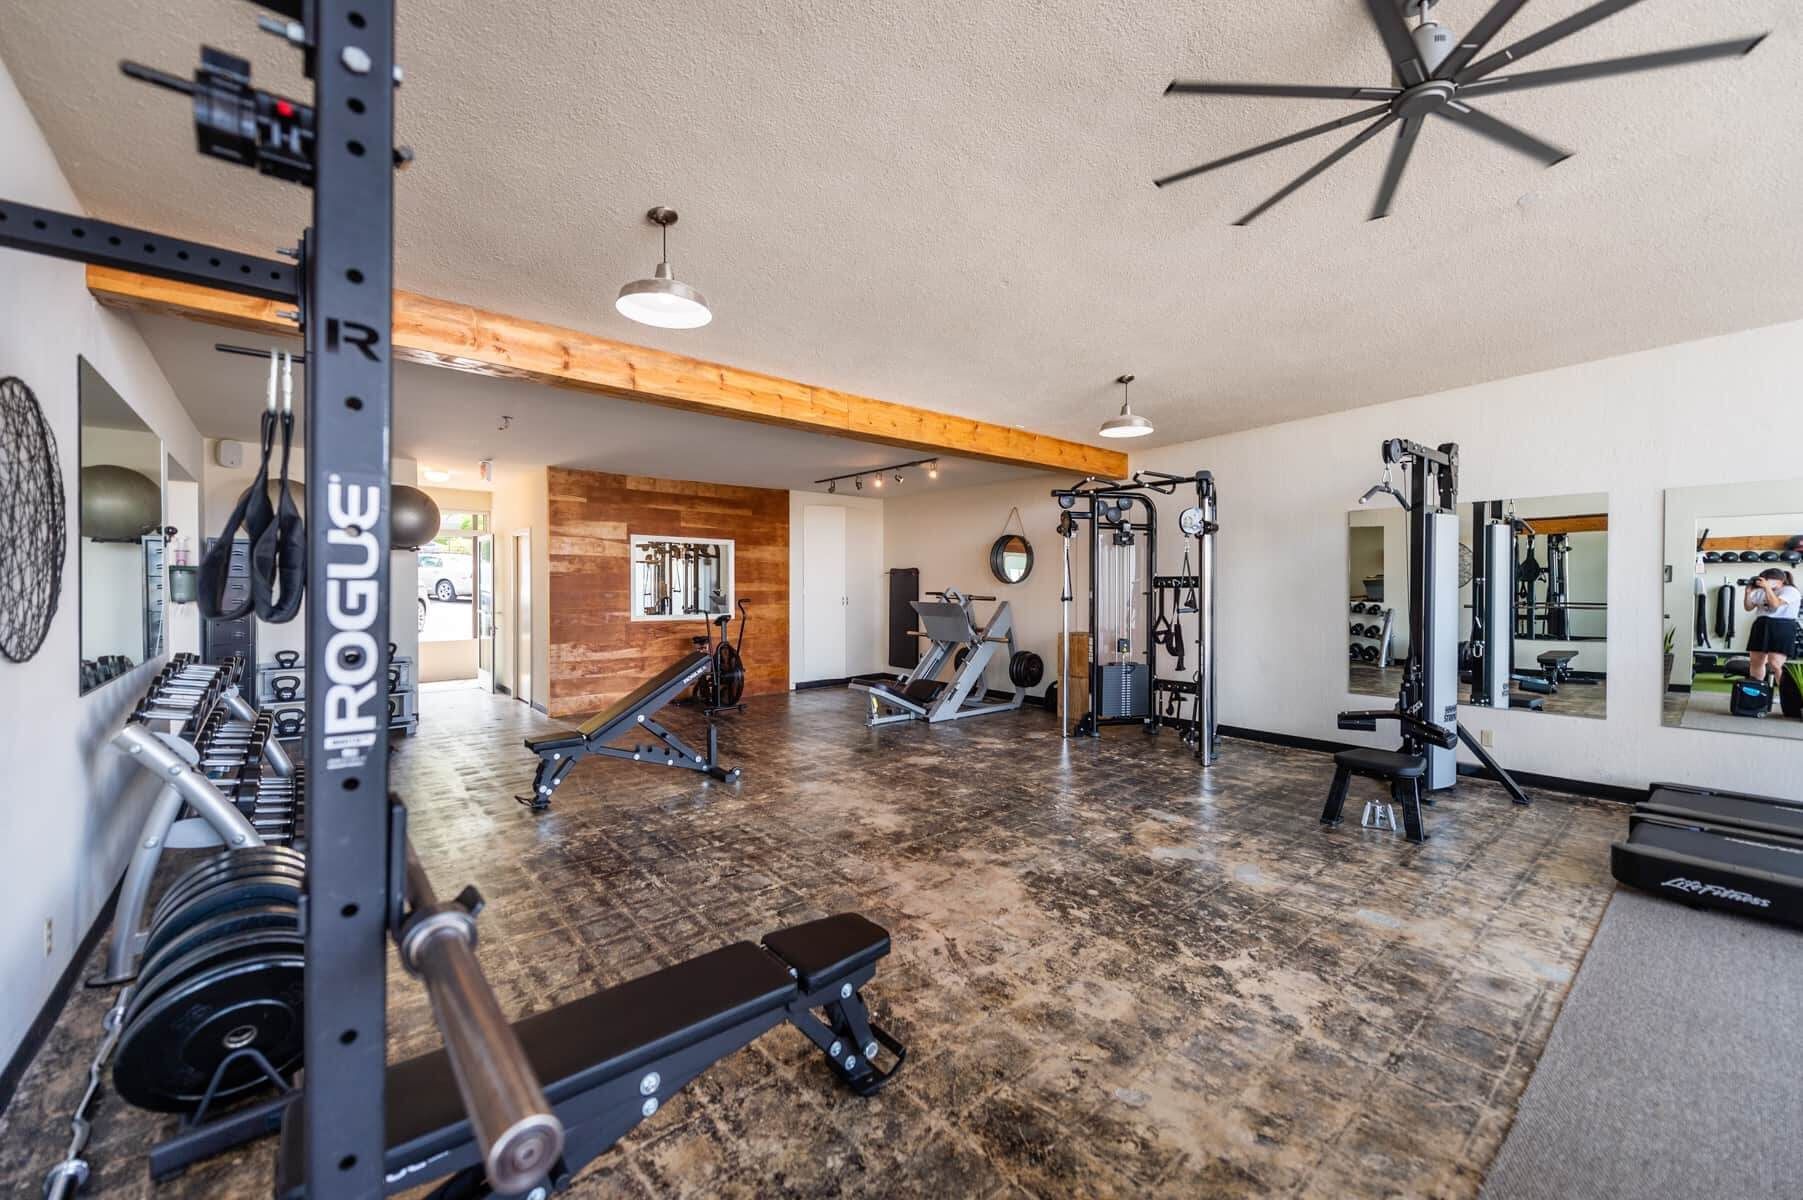 San Carlos Fitness Club And Gym Core Total Fitness